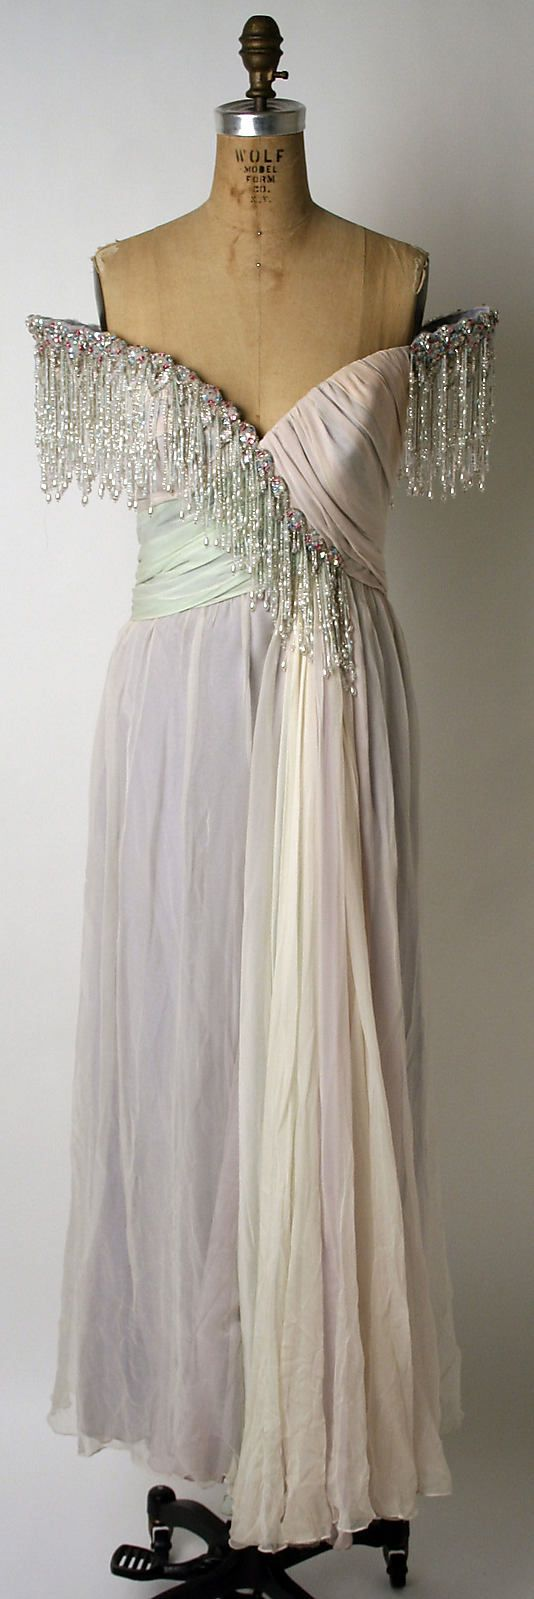 1980s Bob Mackie Evening dress Metropolitan Museum of Art, NY See more museum vintage dresses at http://www.vintagefashionandart.com/dresses